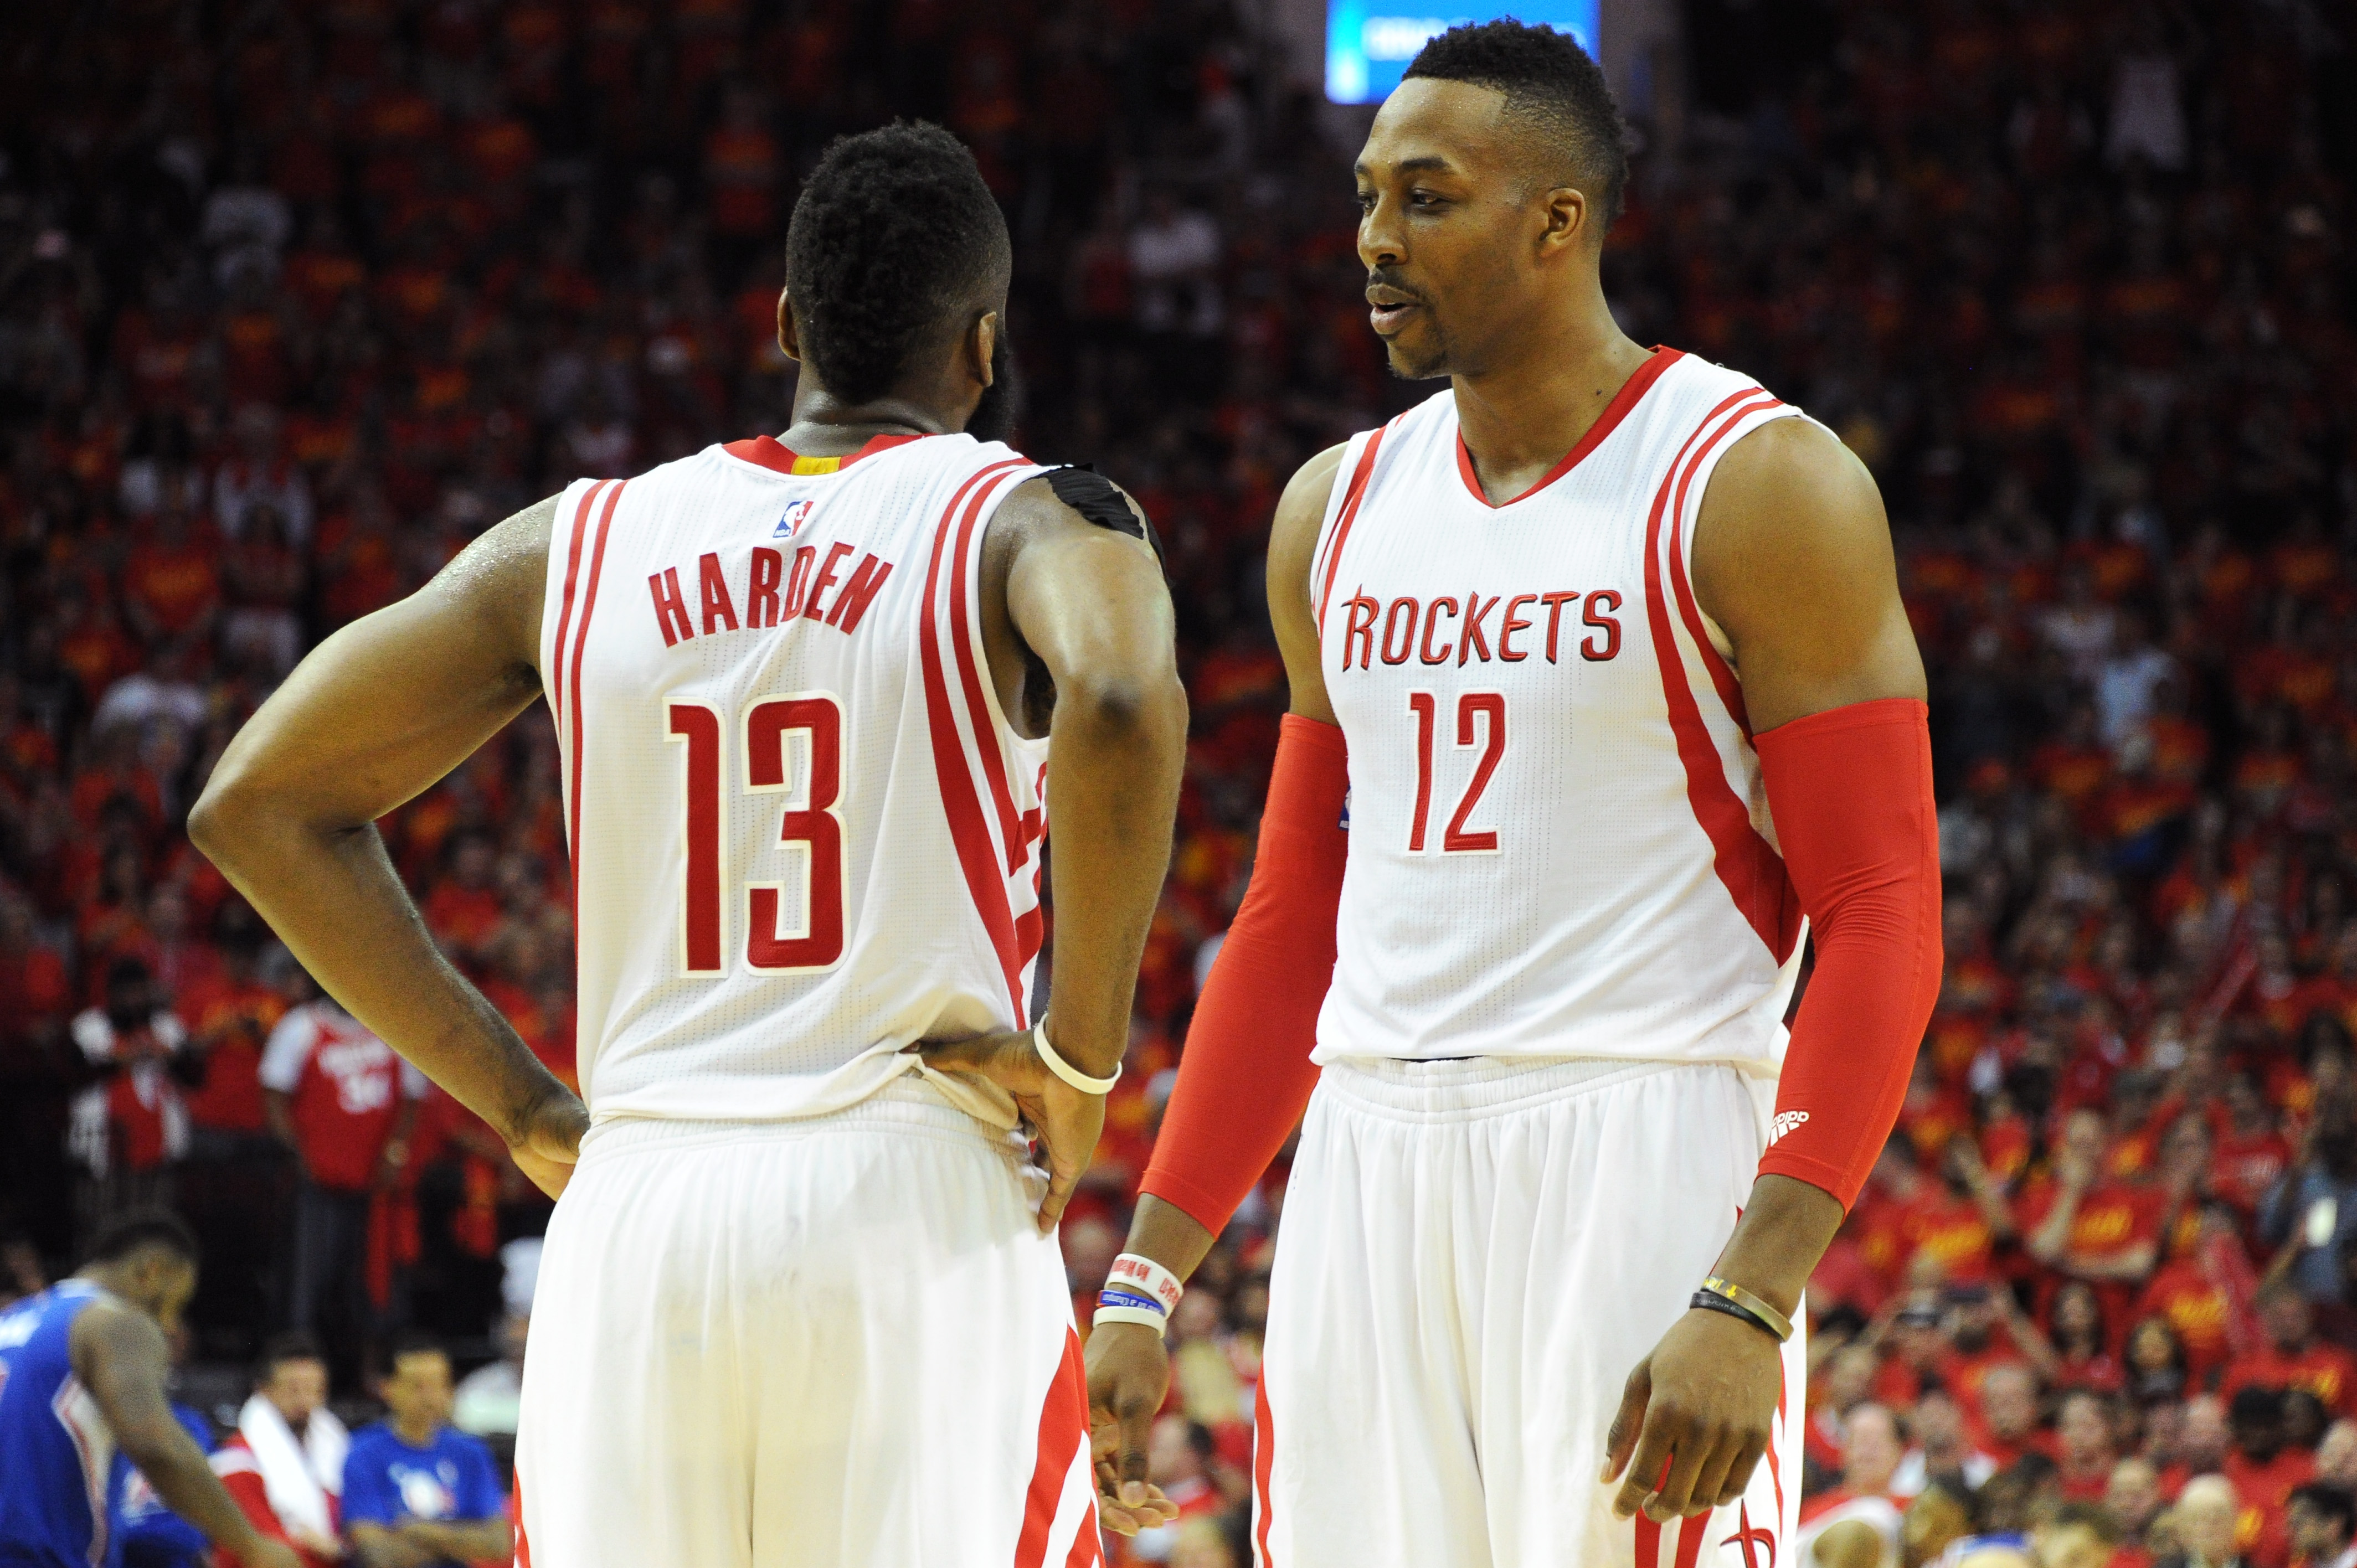 HOUSTON, TX - MAY 17: James Harden #13 and Dwight Howard #12 of the Houston Rockets stands on the court in the final seconds of the win against the Los Angeles Clippers in Game Seven of the Western Conference Semifinals during the 2015 NBA Playoffs on May